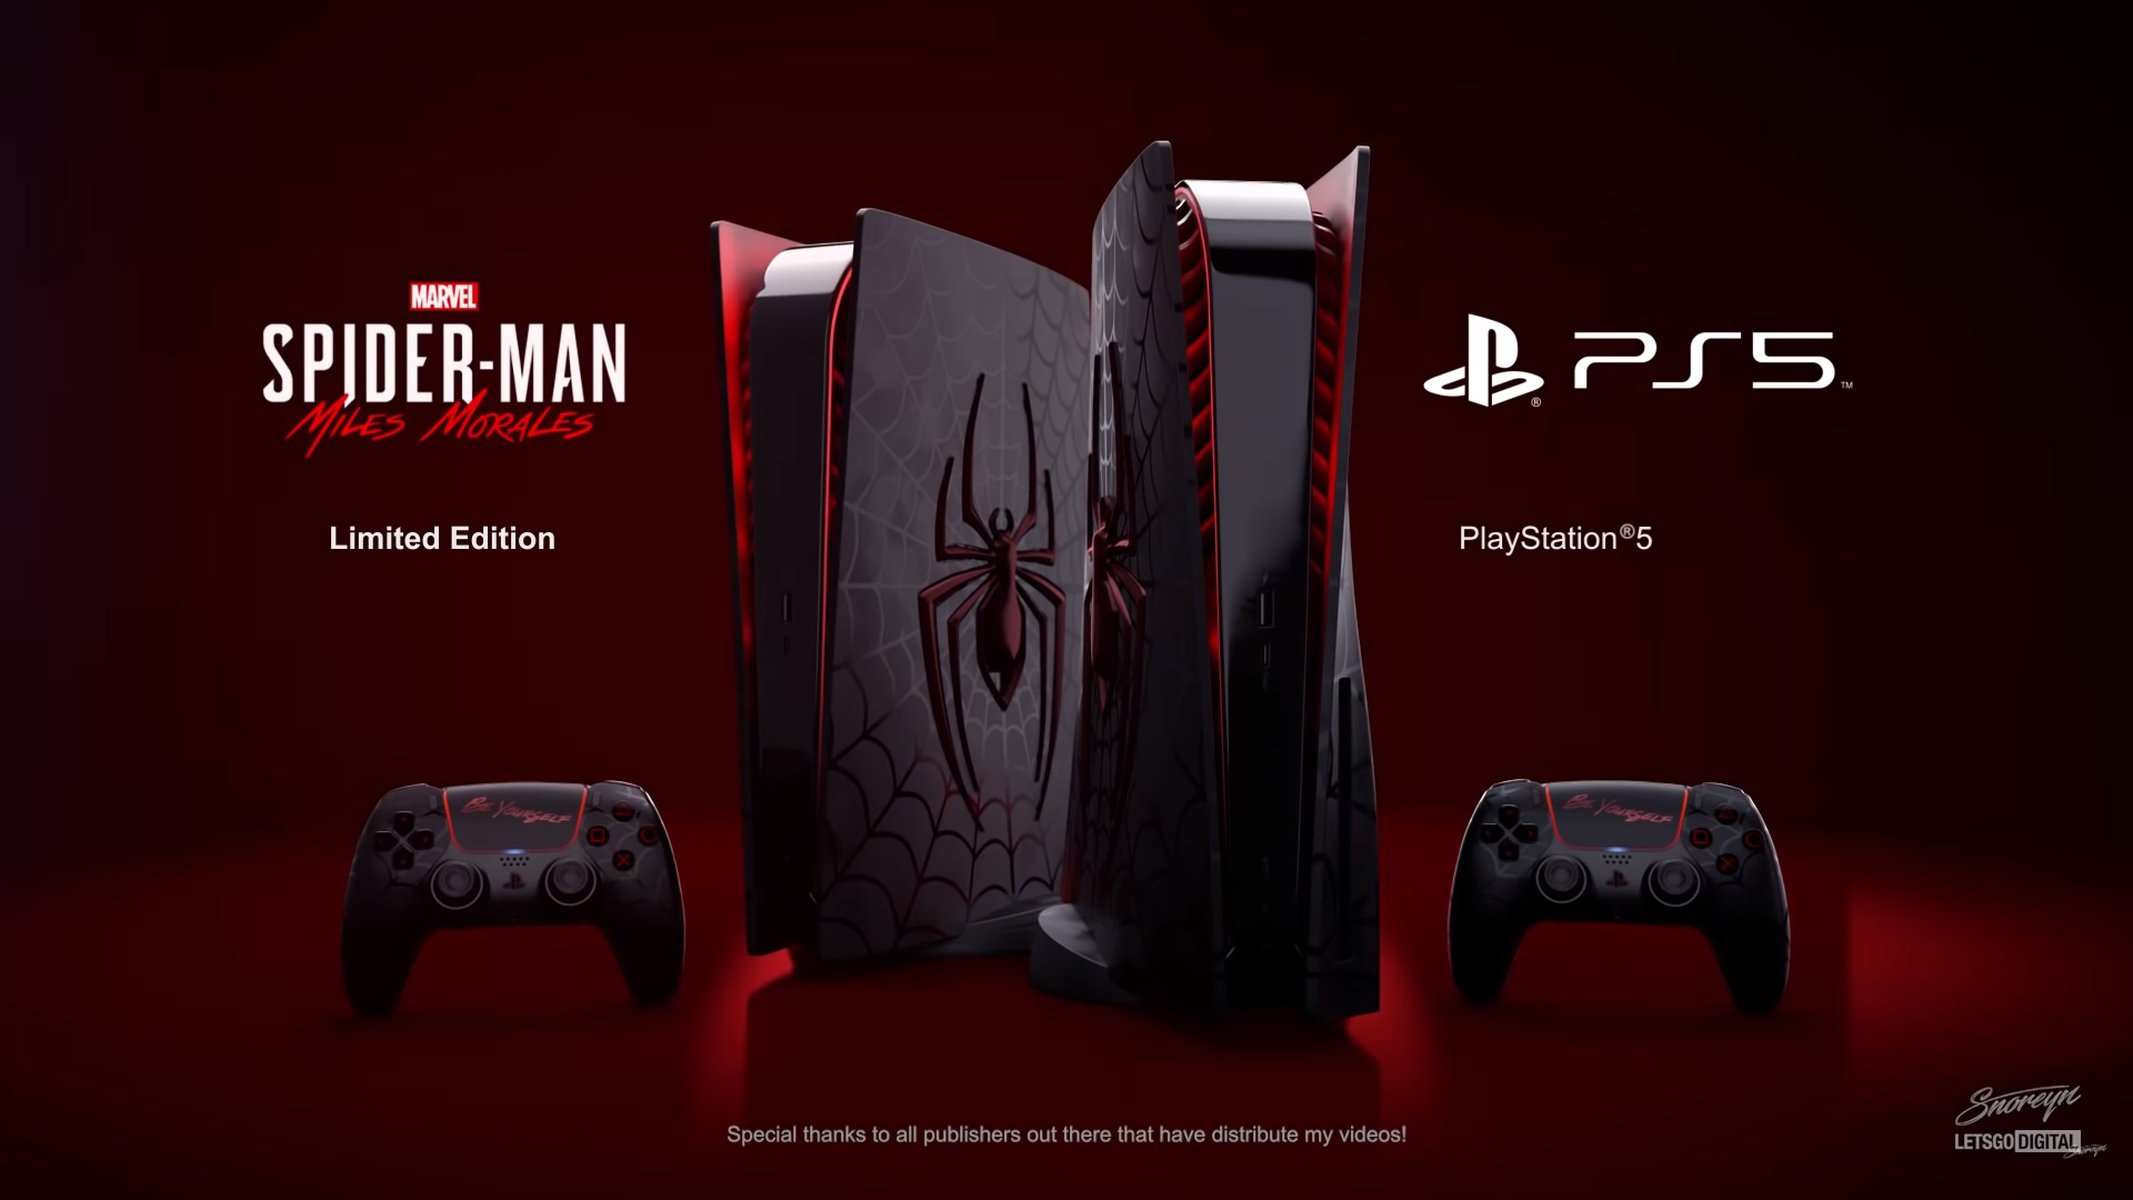 PlayStation 5 Spider-Man Edition